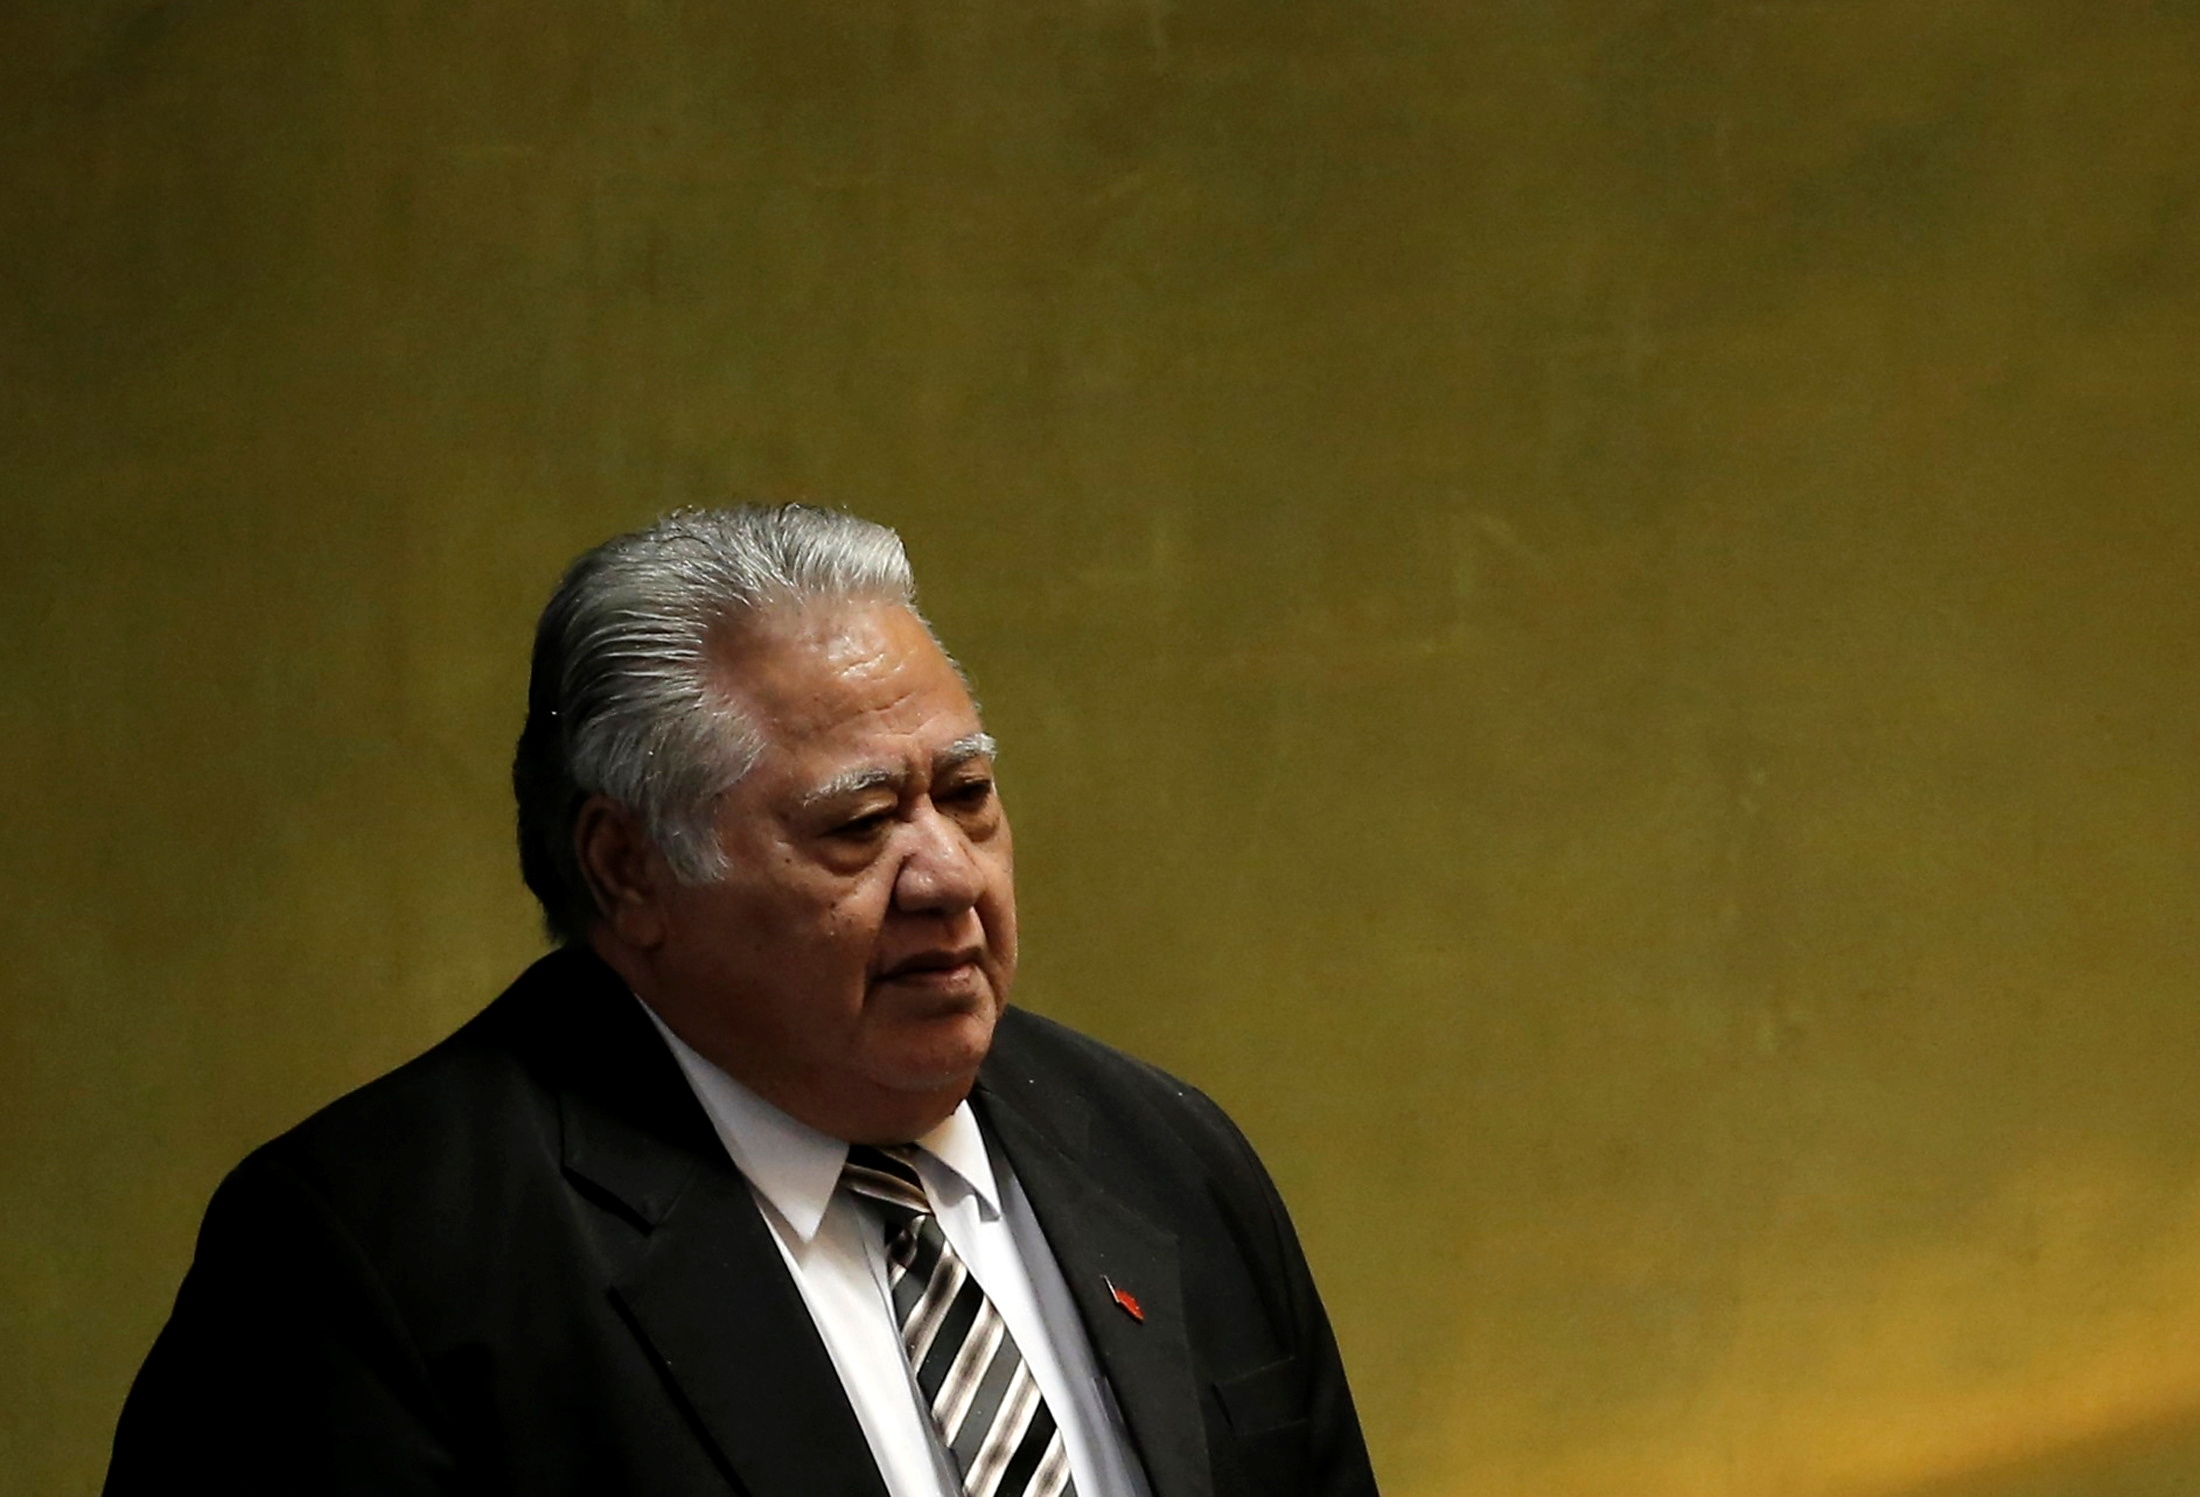 Prime Minister Tuilaepa Sailele Malielegaoi of Samoa arrives to address the 71st United Nations General Assembly in the Manhattan borough of New York, U.S., September 23, 2016.  REUTERS/Mike Segar/File Photo